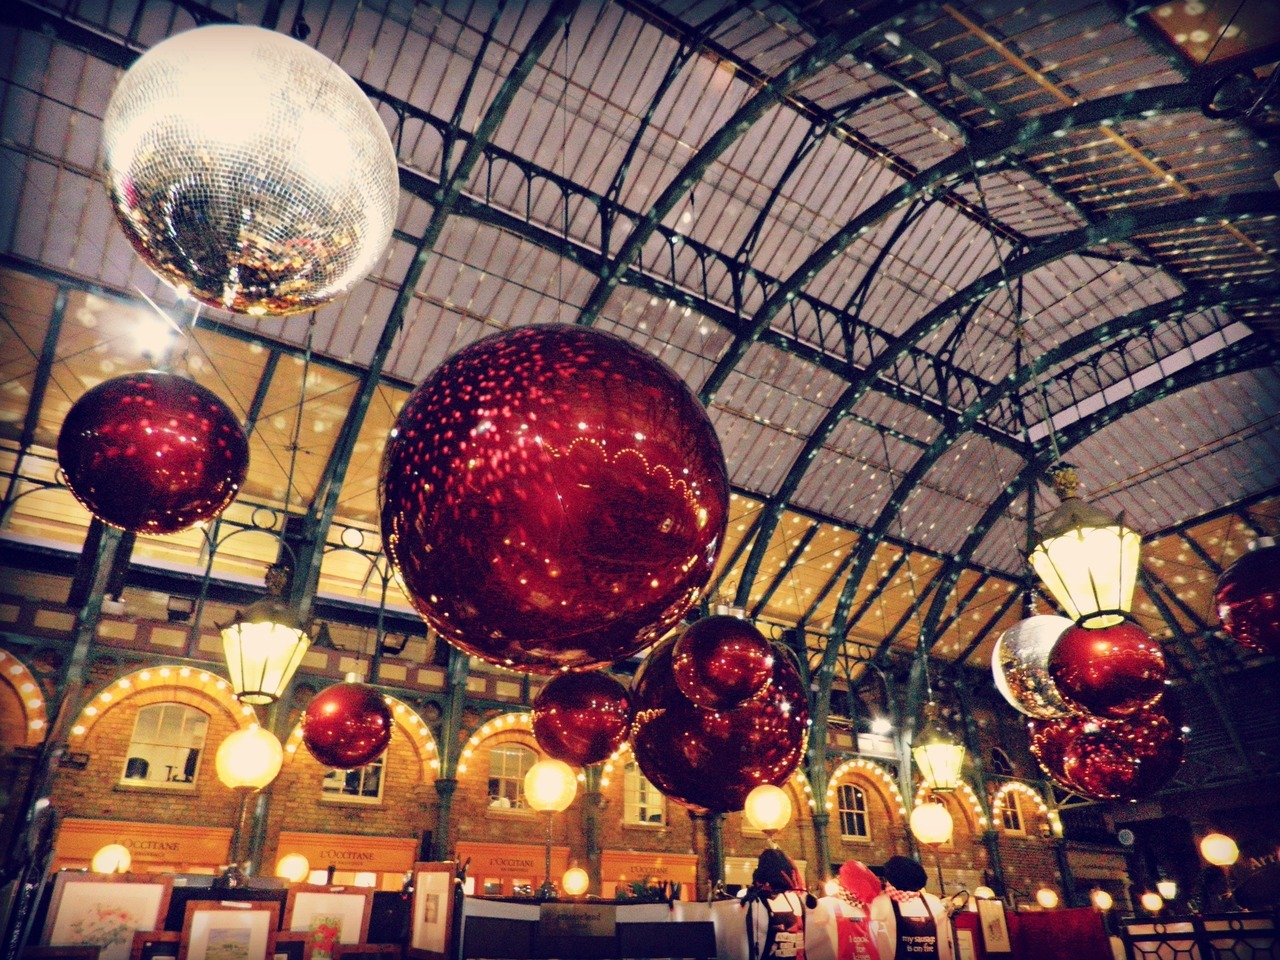 Christmas decorations in Covent Garden